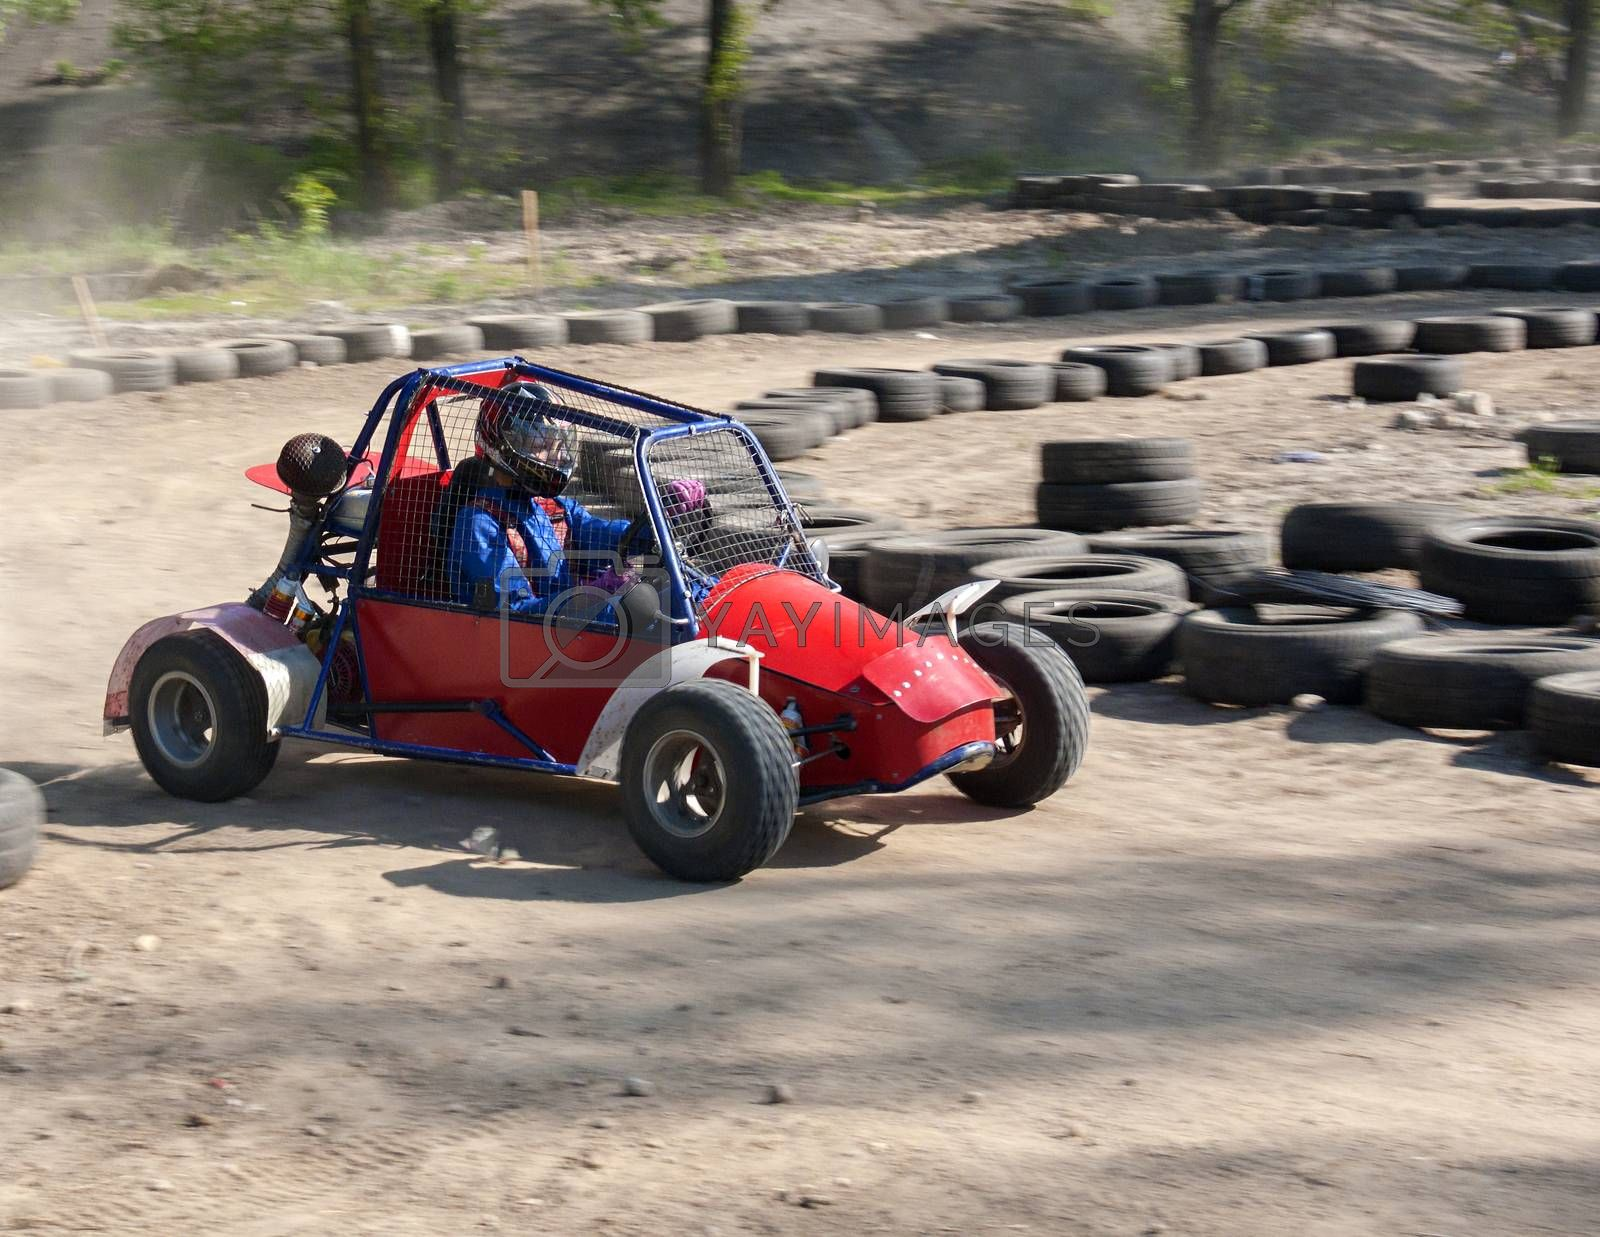 Race of a teenager on a children's buggy kicking up trail of dust on sand track